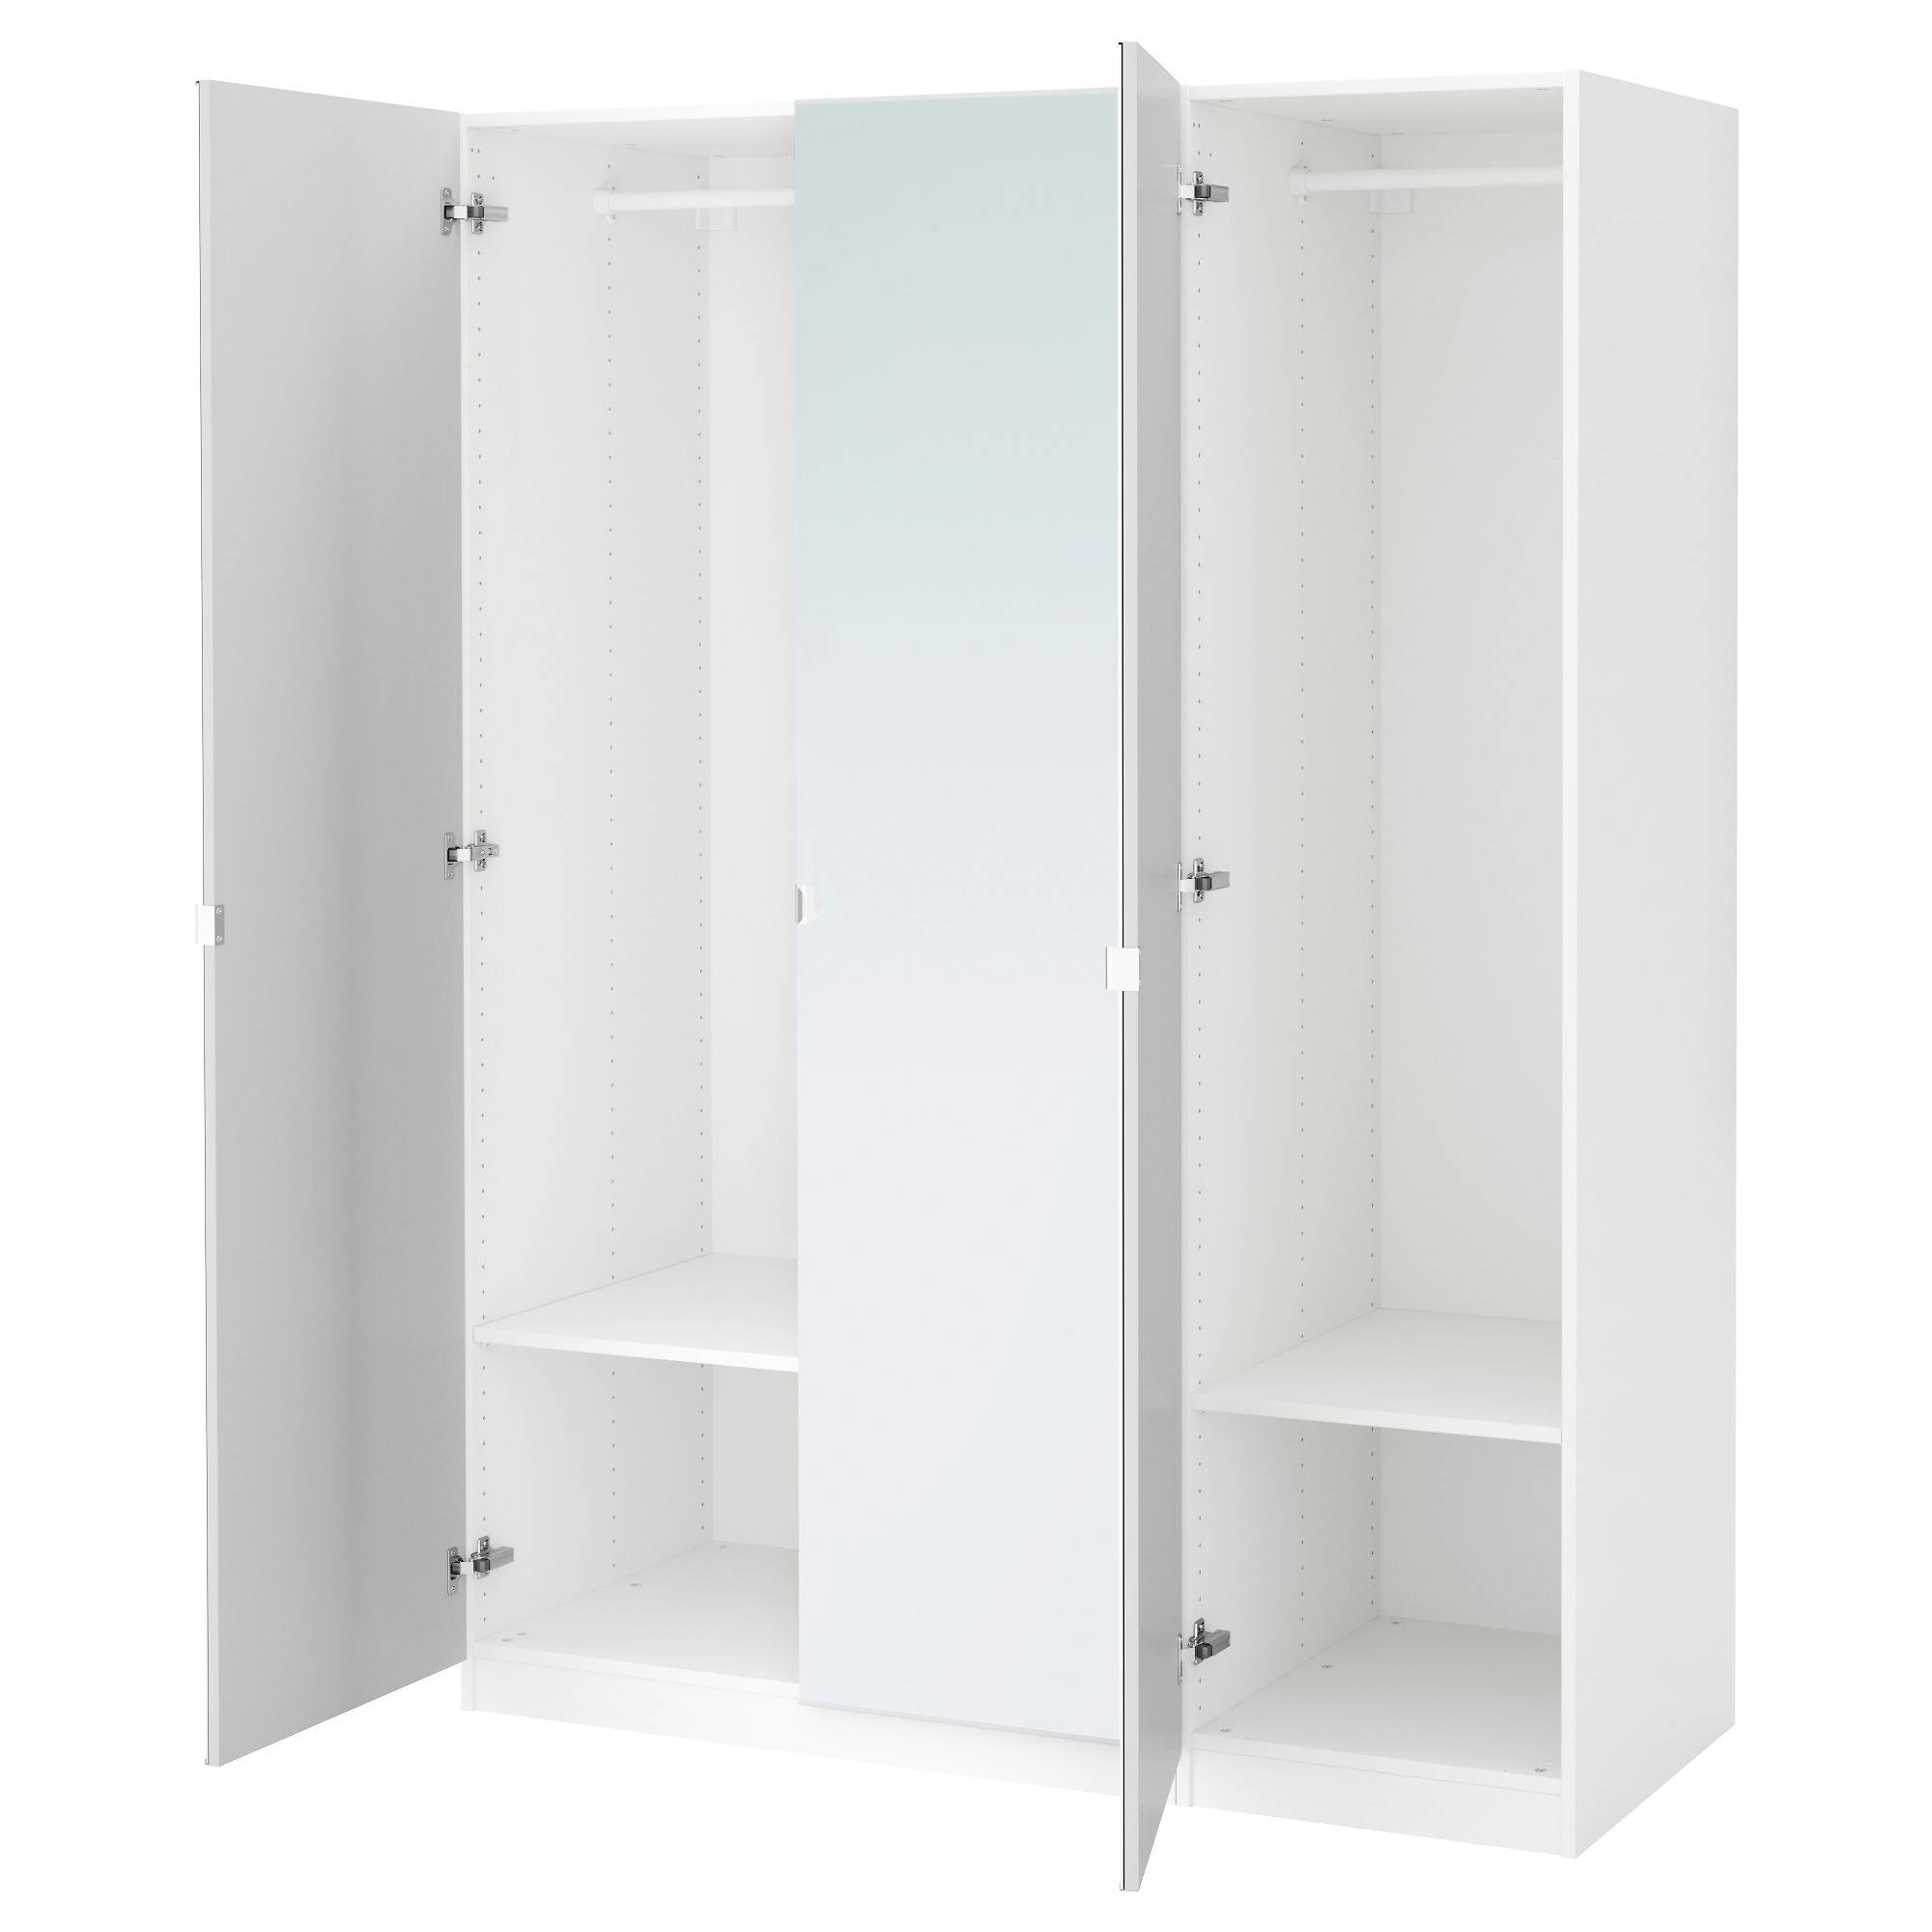 Wardrobes | Ikea within Double Rail Wardrobe (Image 28 of 30)